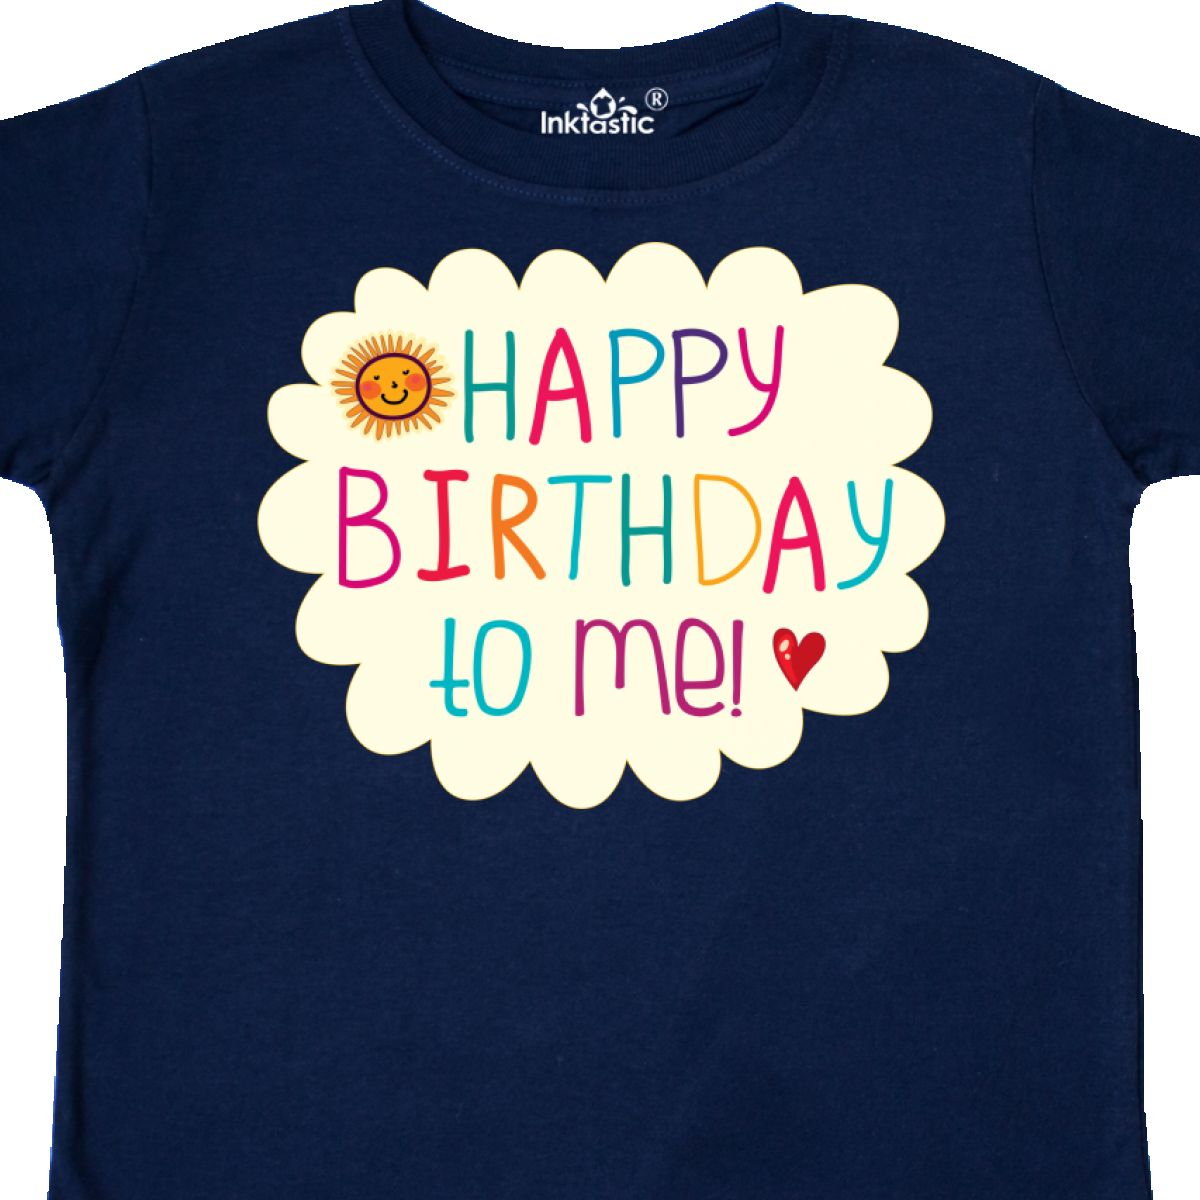 Inktastic Happy Birthday To Me Toddler T Shirt